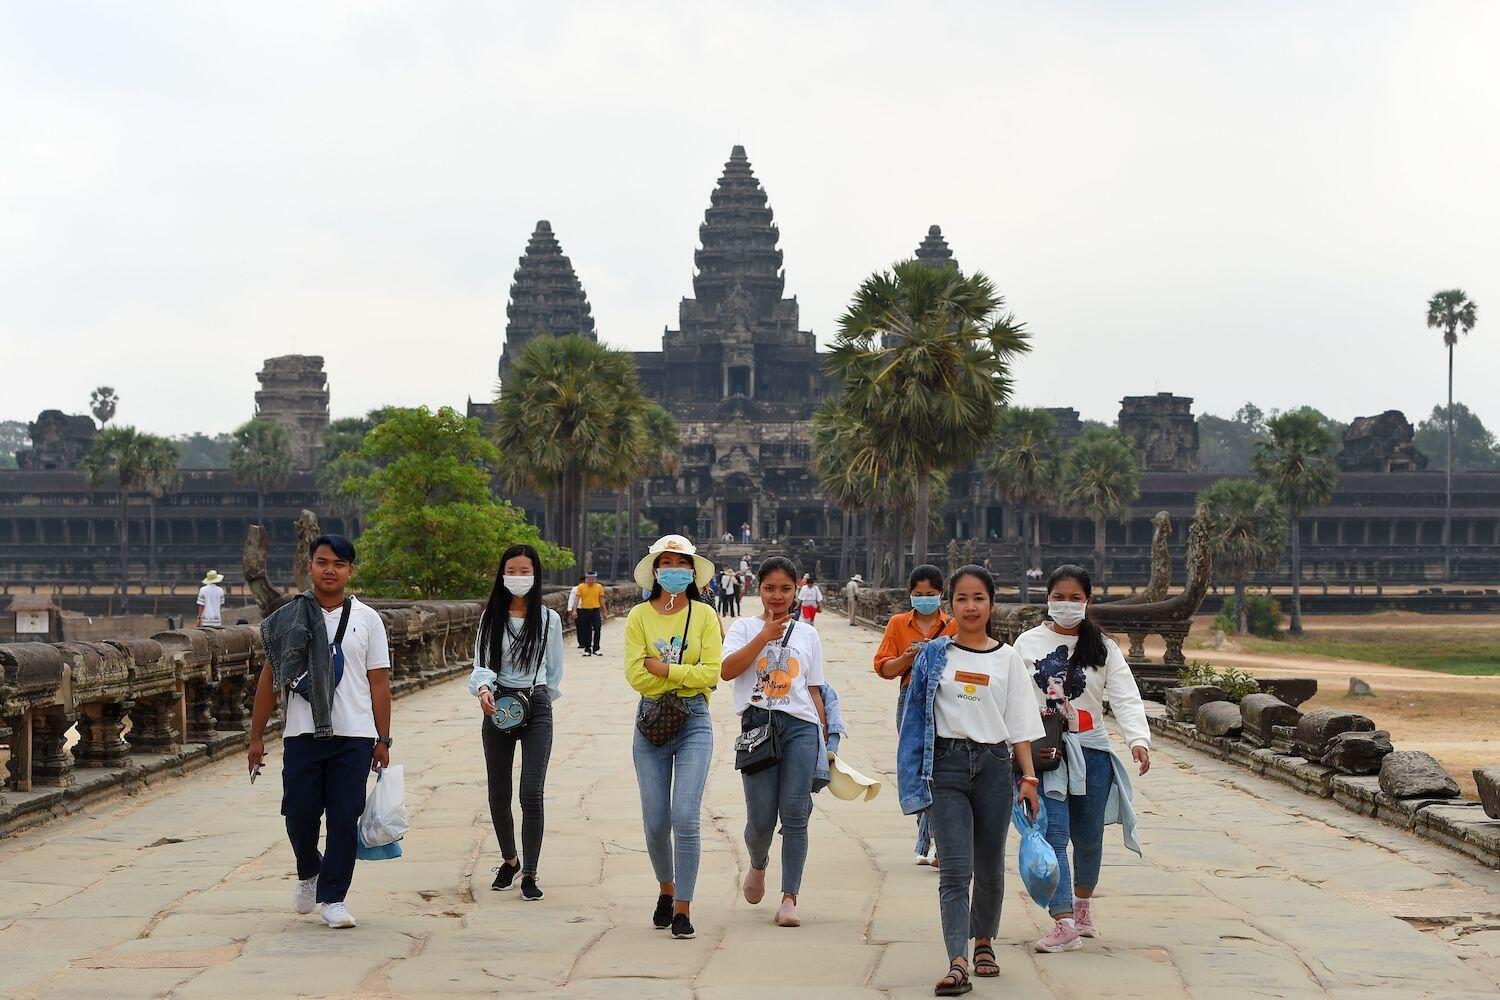 AFP Photo - People wear face masks as they visit Angkor Wat in Siem Reap province of Cambodia